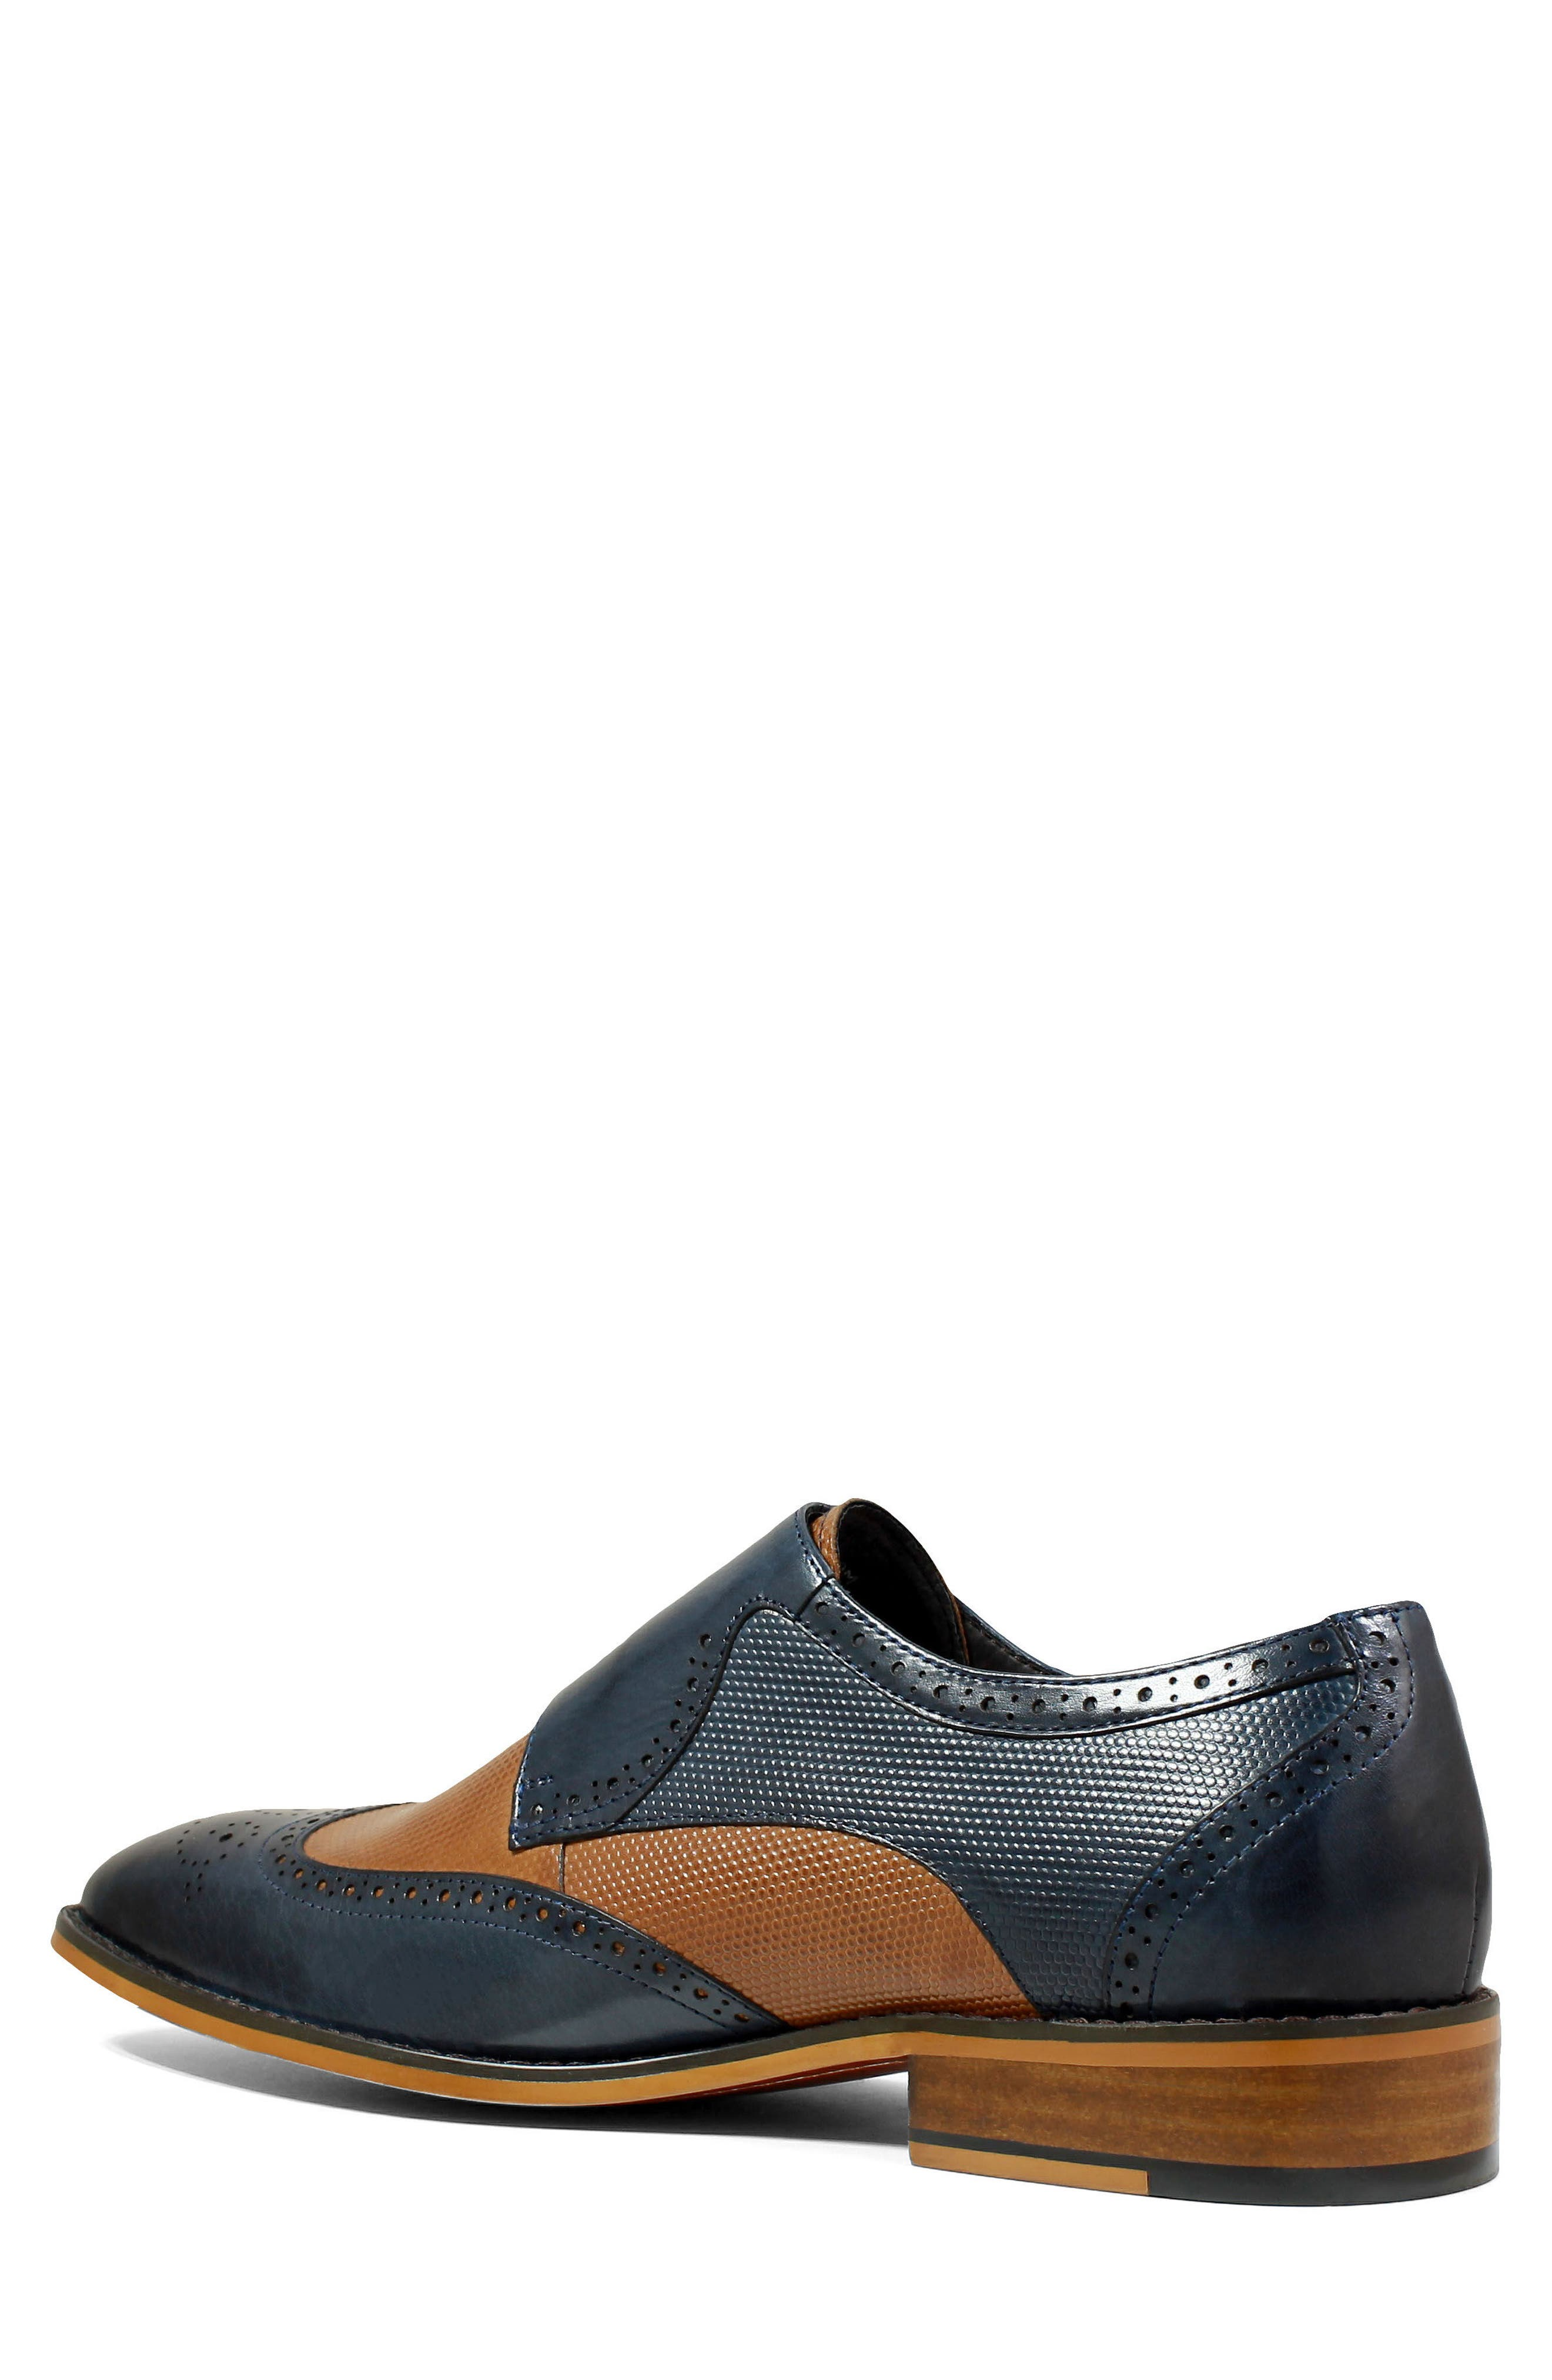 STACY ADAMS Lavine Wingtip Monk Shoe, Main, color, NAVY AND SADDLE TAN LEATHER